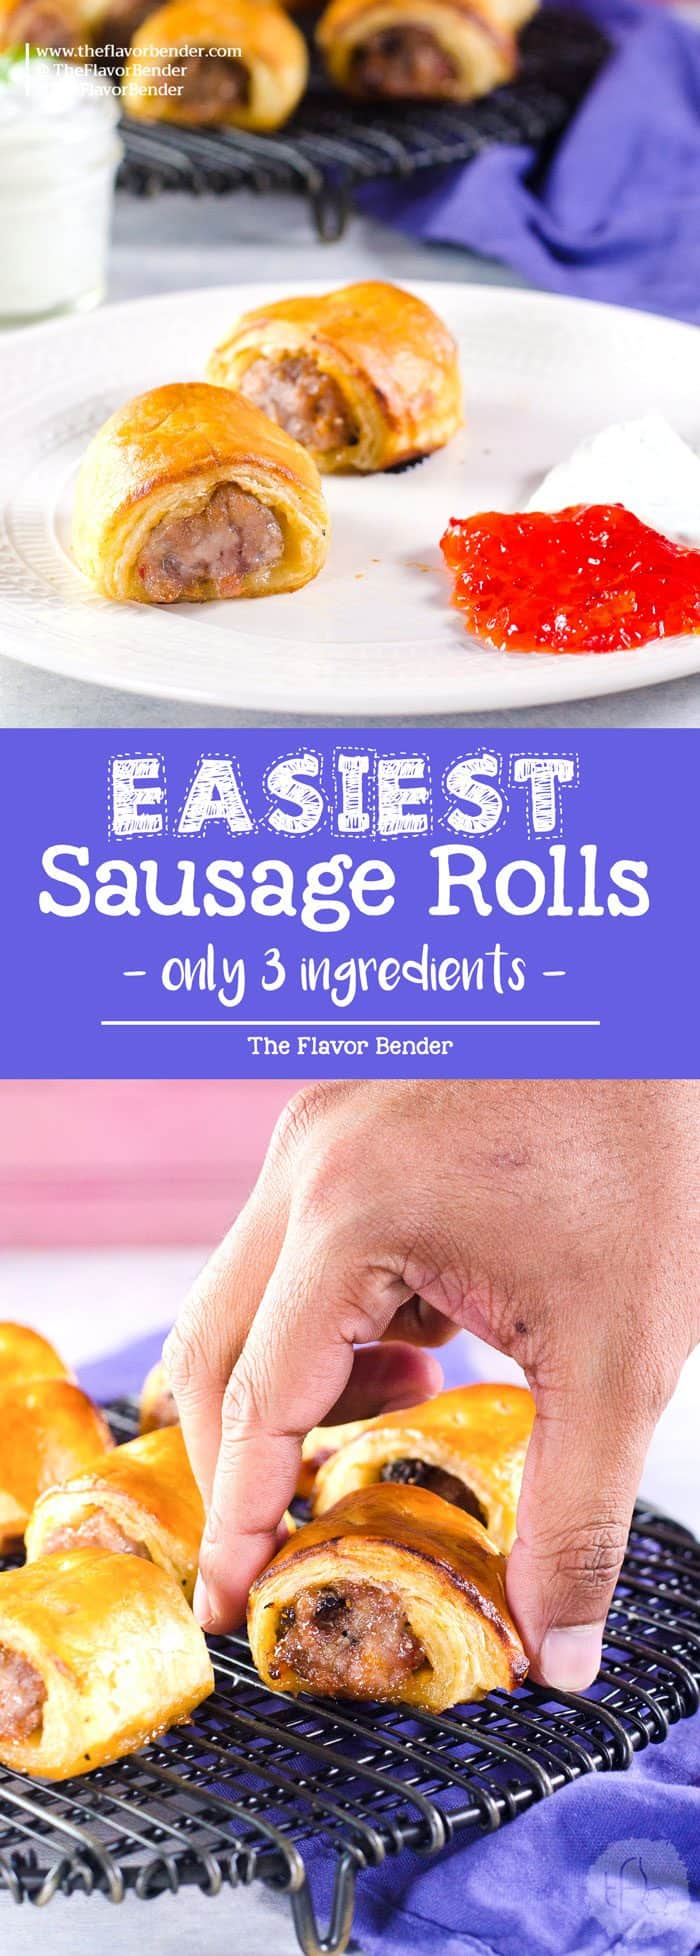 Easy Sausage Rolls with just 3 ingredients -You can customize these sausage rolls easily with your favorite flavor pairings, and they can be made ahead of time and frozen for later too. Easy pork sausage rolls that are perfect for holiday entertaining, as an appetizer or as a brunch or lunch snack!